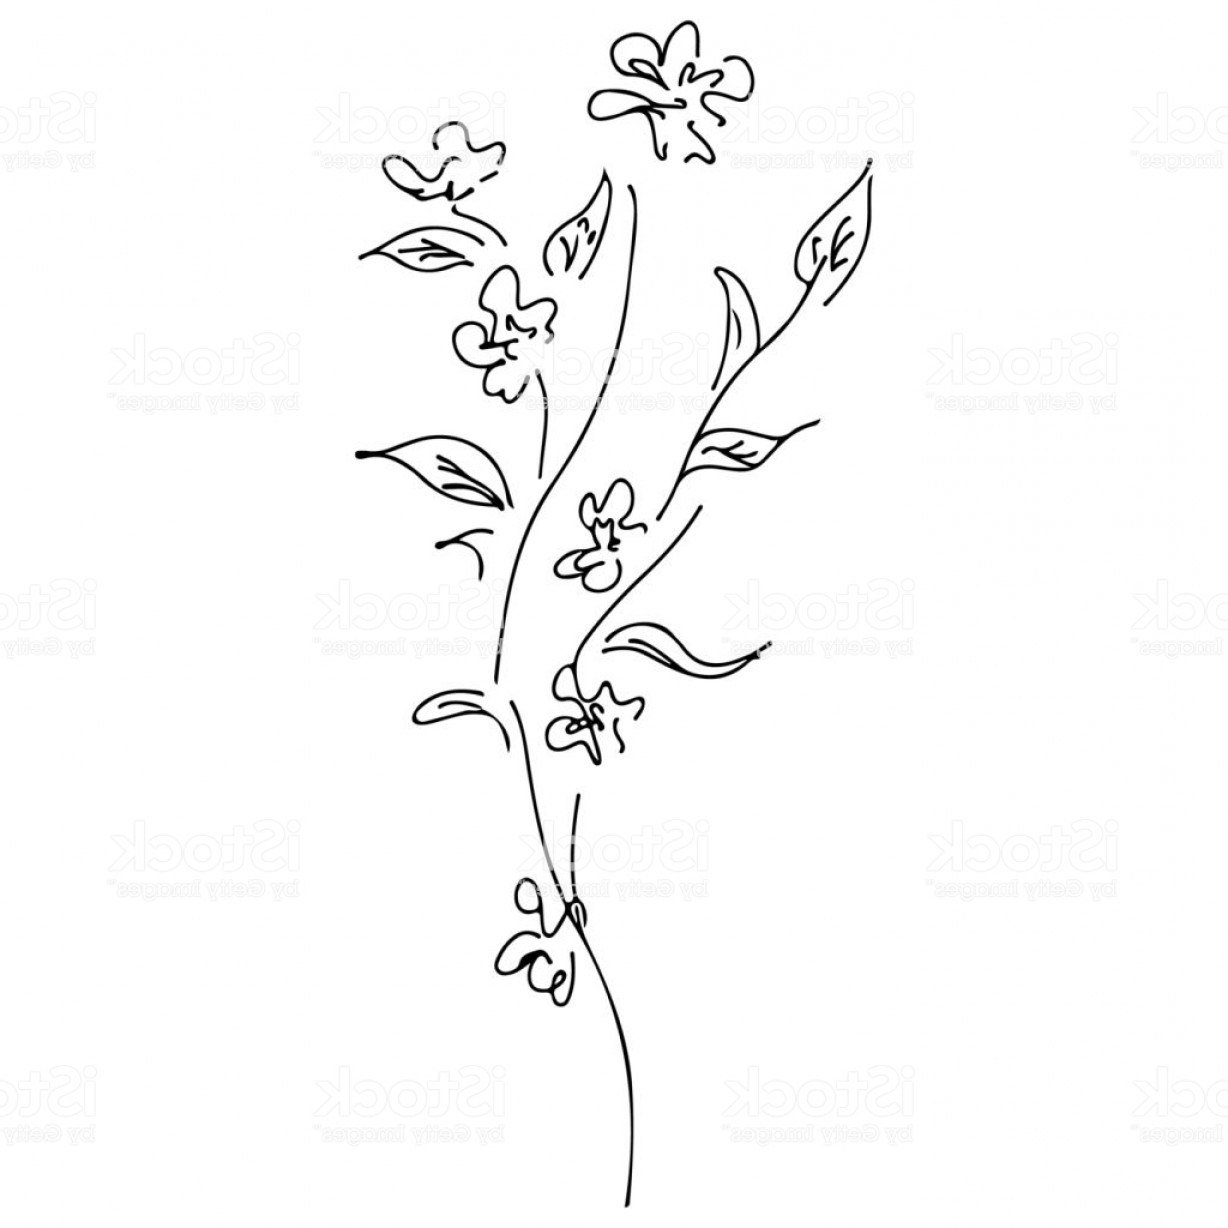 Wildflowers Outline Vector: Abstract Wildflowers Outline Icon Isolated On White Background Creative Luxury Gm